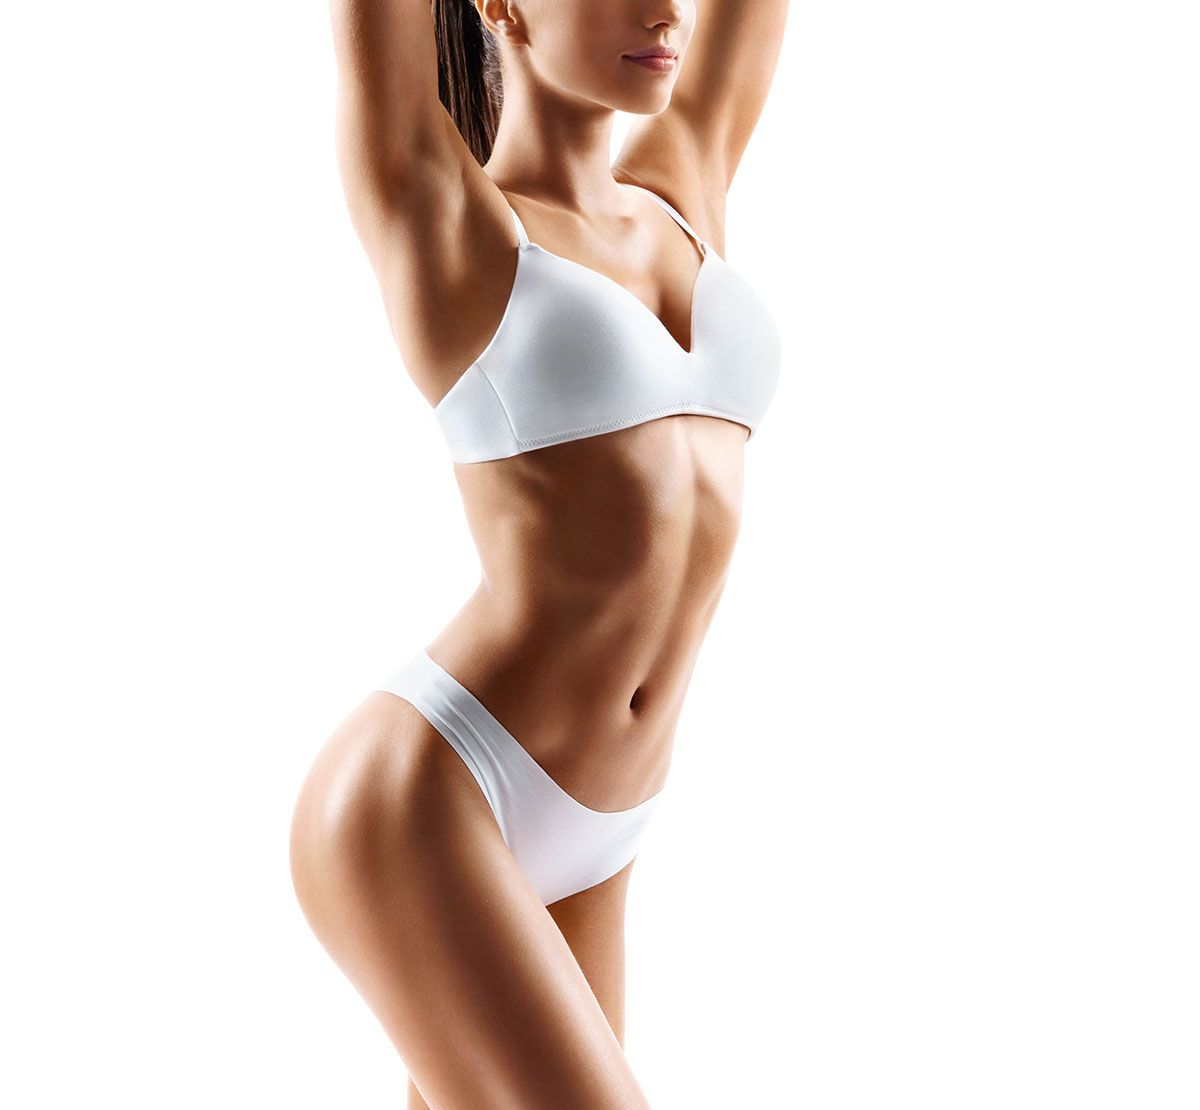 CoolSculpting Helps Contour Your Figure